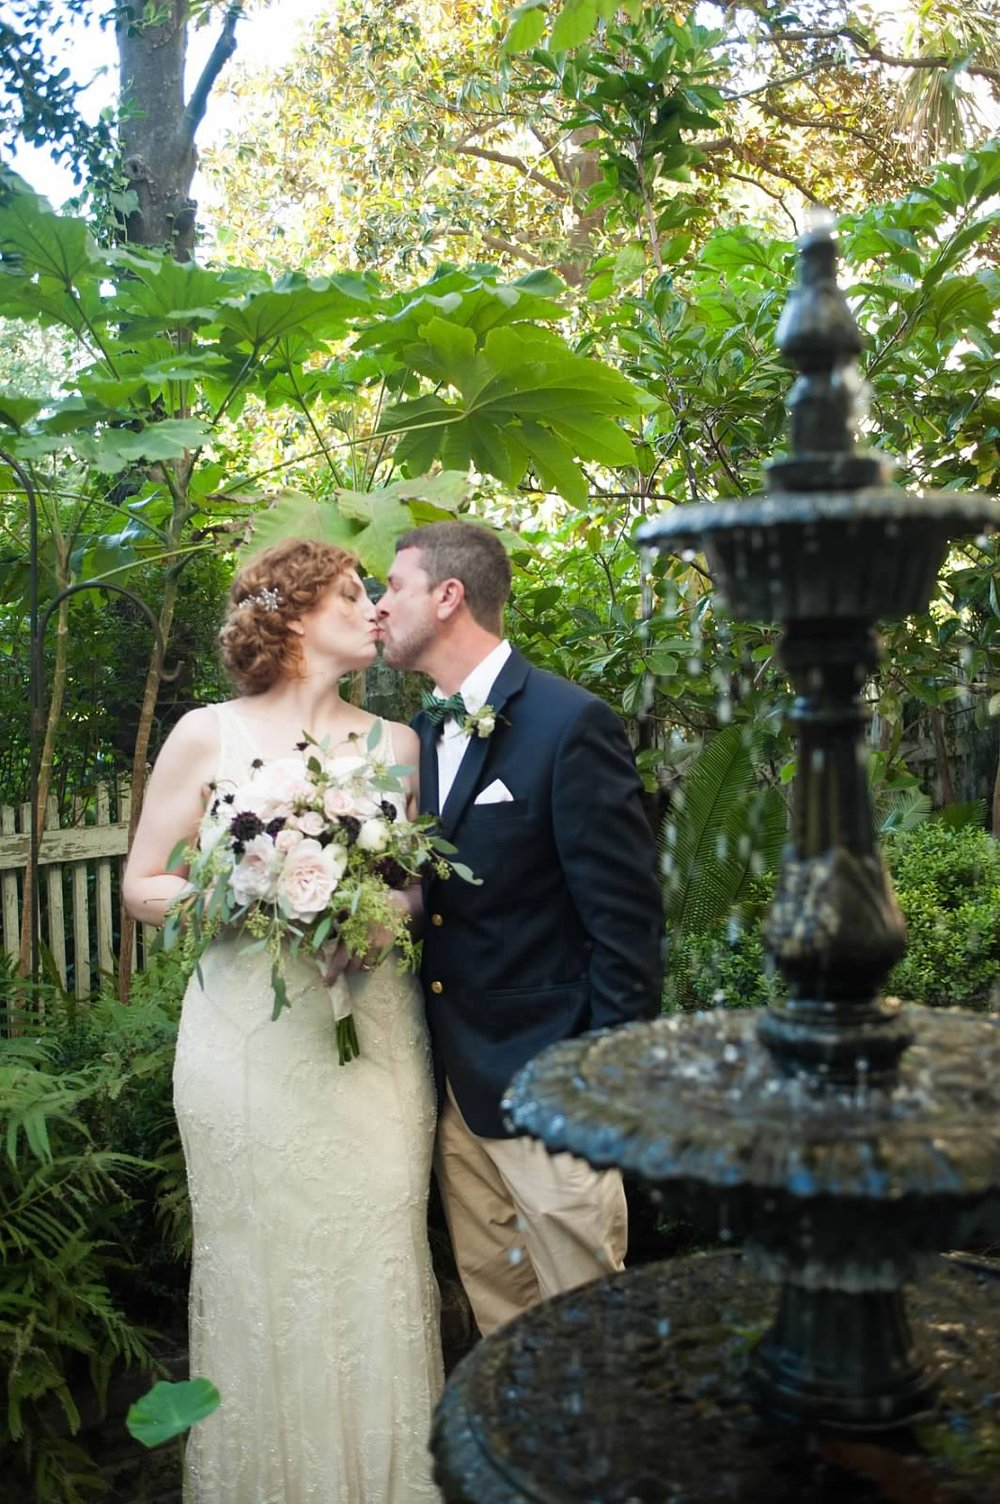 jeff-and-mollie-weddings-ivory-and-beau-bridal-boutique-savannah-intimate-wedding-savannah-elopement-rebecca-schoneveld-gemma-savannah-bridal-boutique-savannah-wedding-planner-savannah-wedding-florist-savannah-bridal-accessories-art-deco-bride-15.jpg